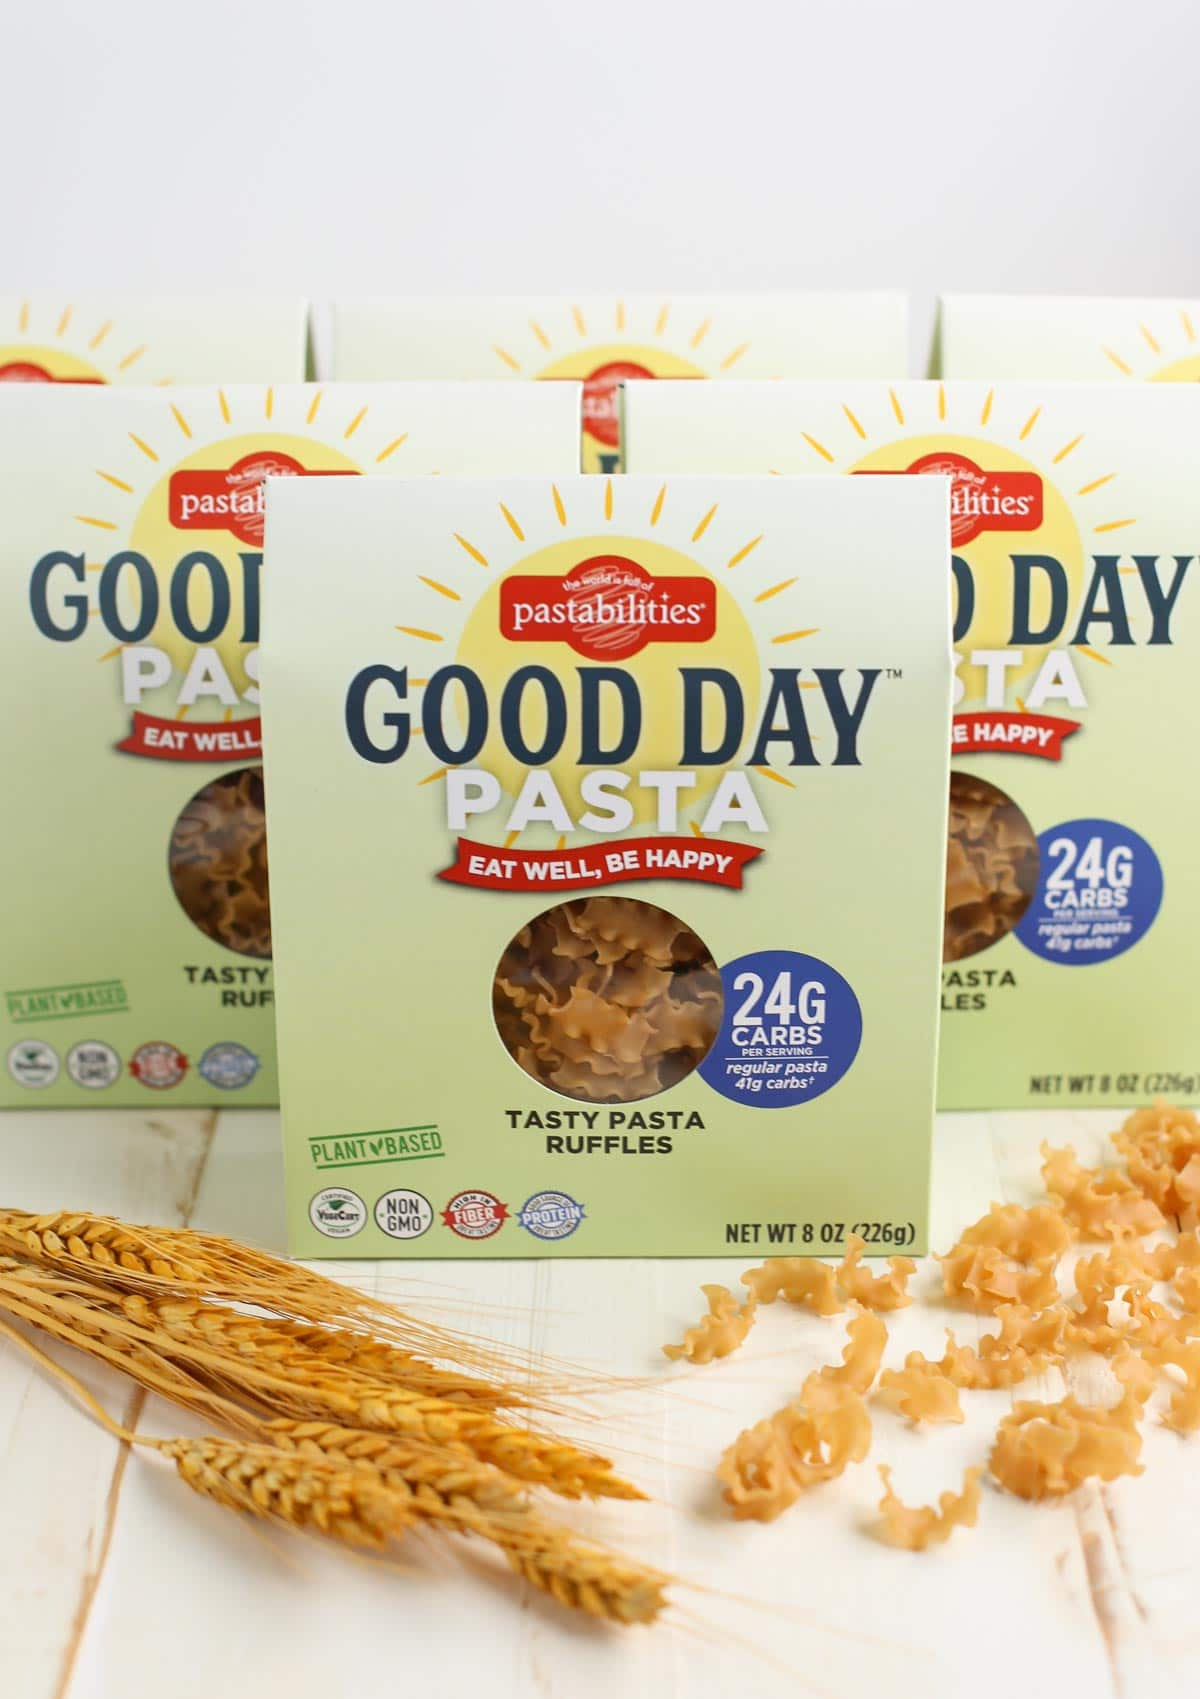 Good Day Pasta | Low Carb Keto Friendly Pasta | 42% less carbs than regular pasta | Delicious and Nutritious